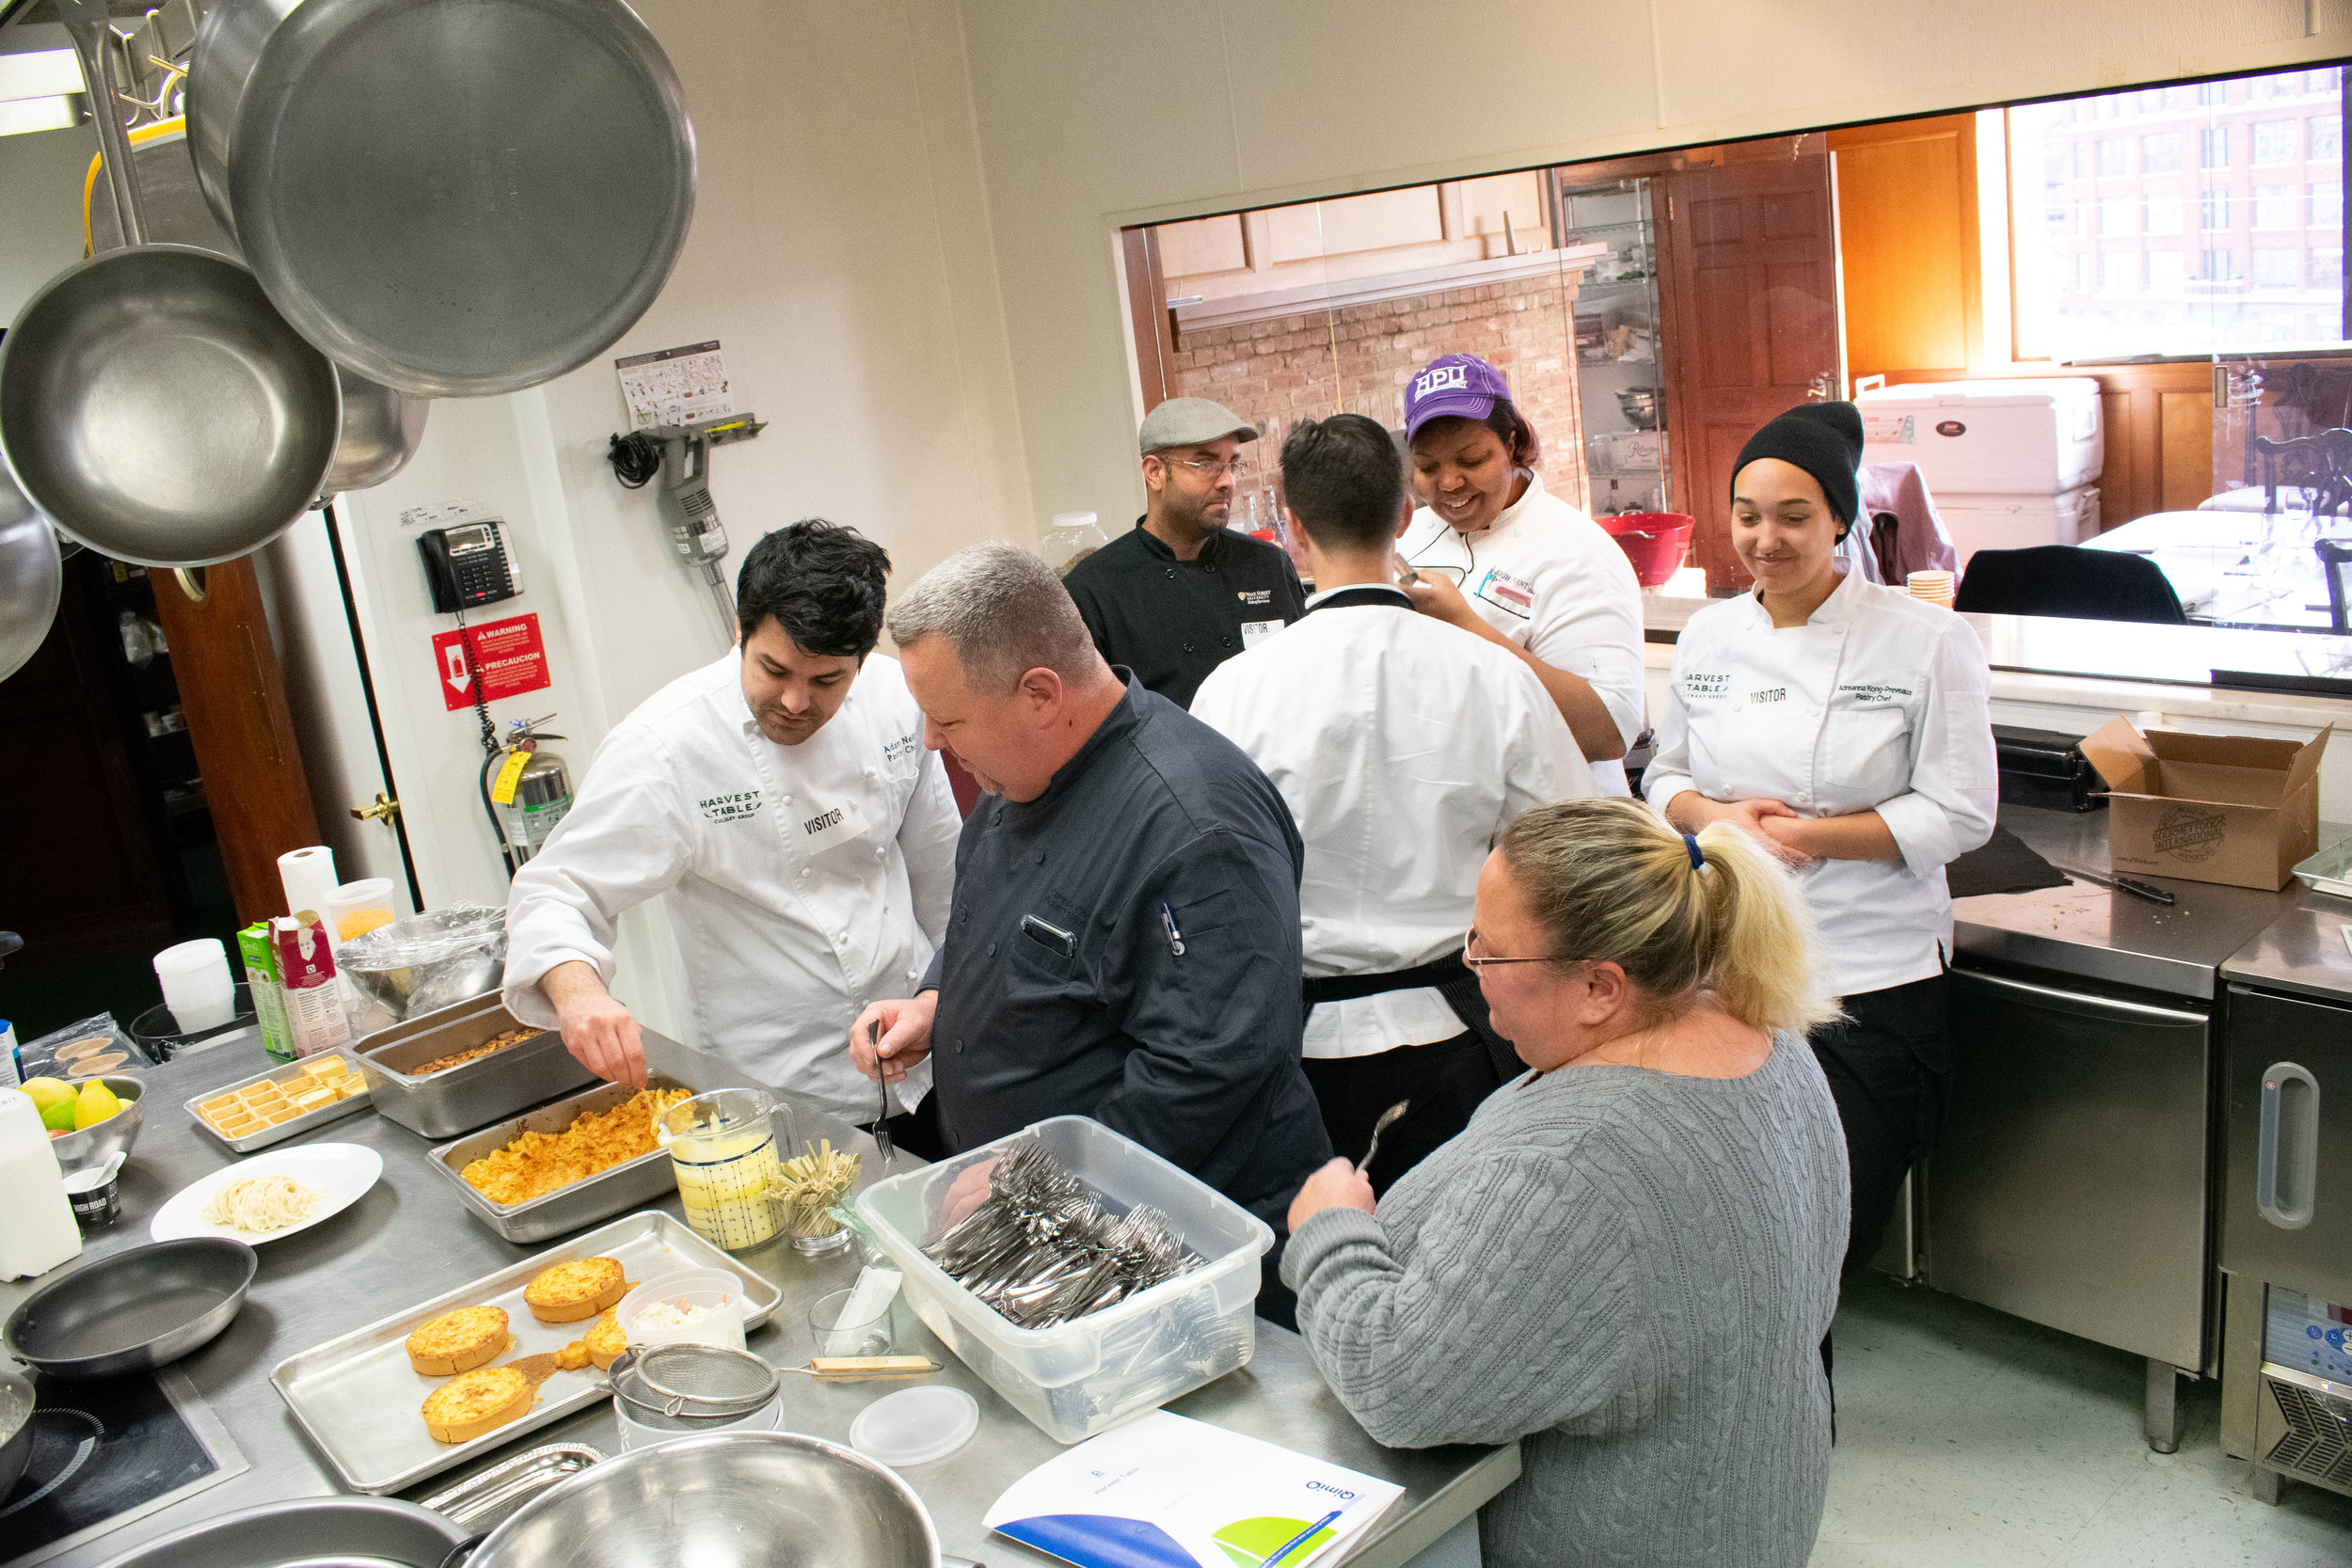 Pastry Chefs from Elon University, Georgetown University, Wake Forest University, High Point University and University of Rochester attended this event along with Chef Matthew.